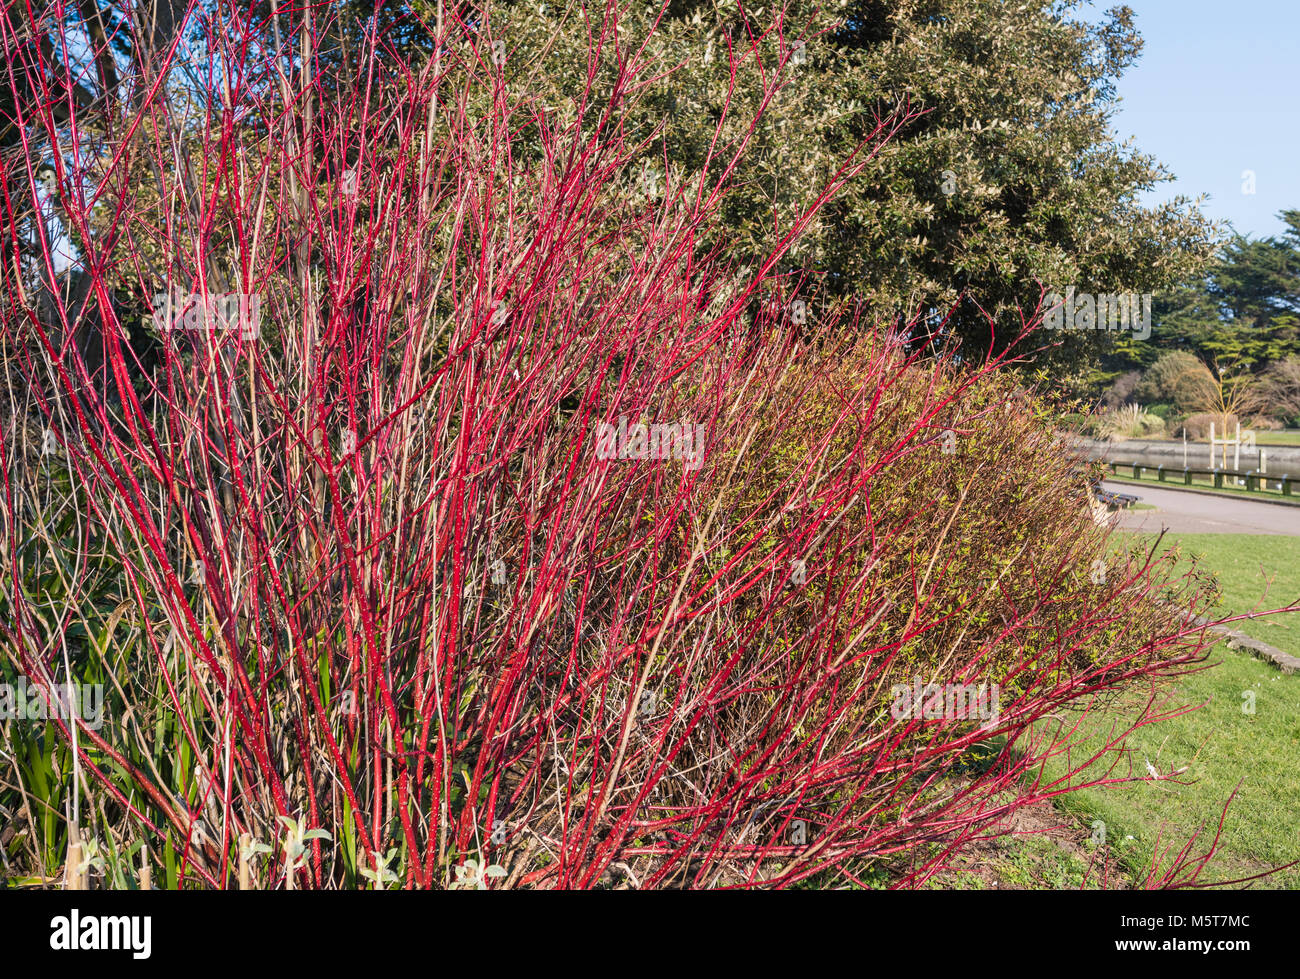 Bright red colourful stems of a Cornus alba 'Sibirica' (Siberian dogwood) plant in Winter in Southern England, - Stock Image